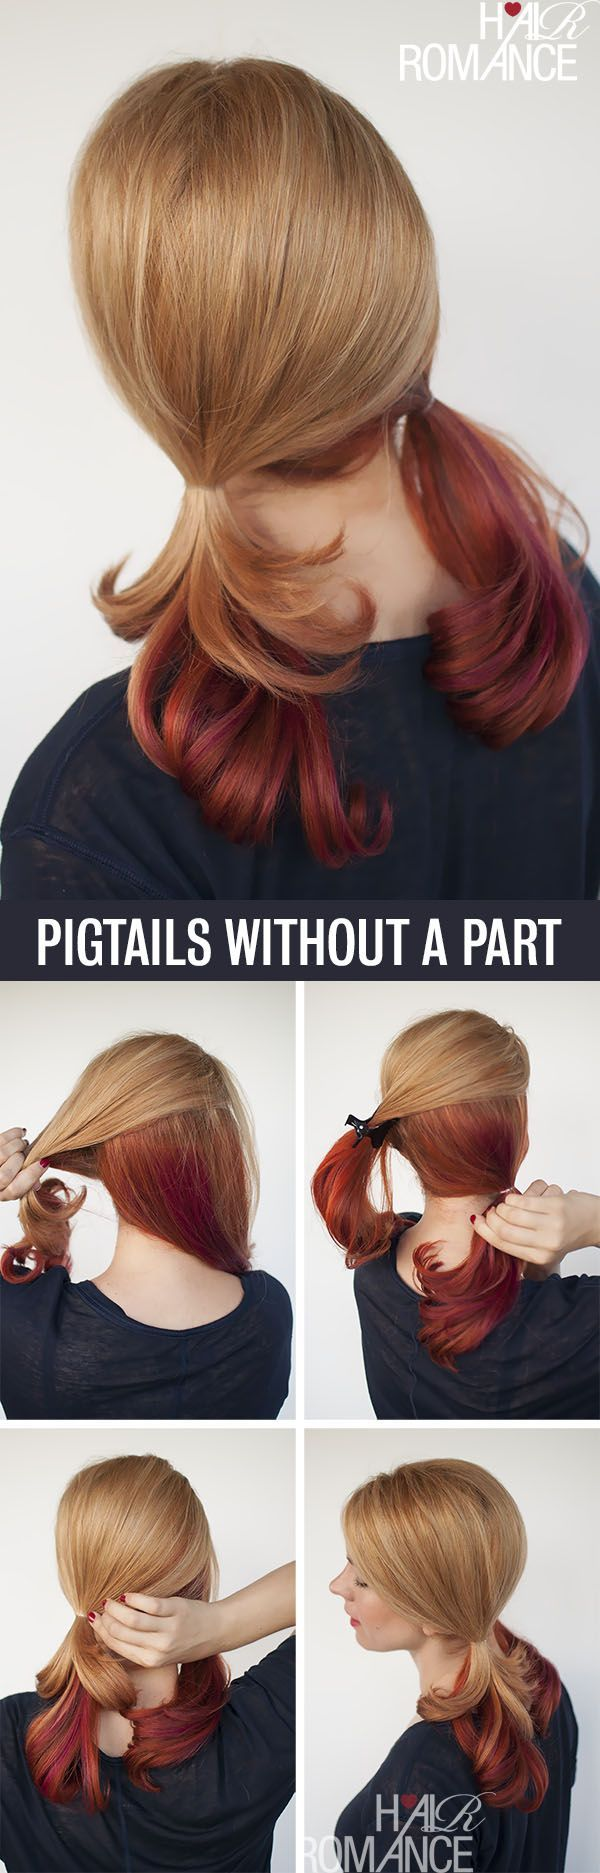 How to wear pigtails without a part line.